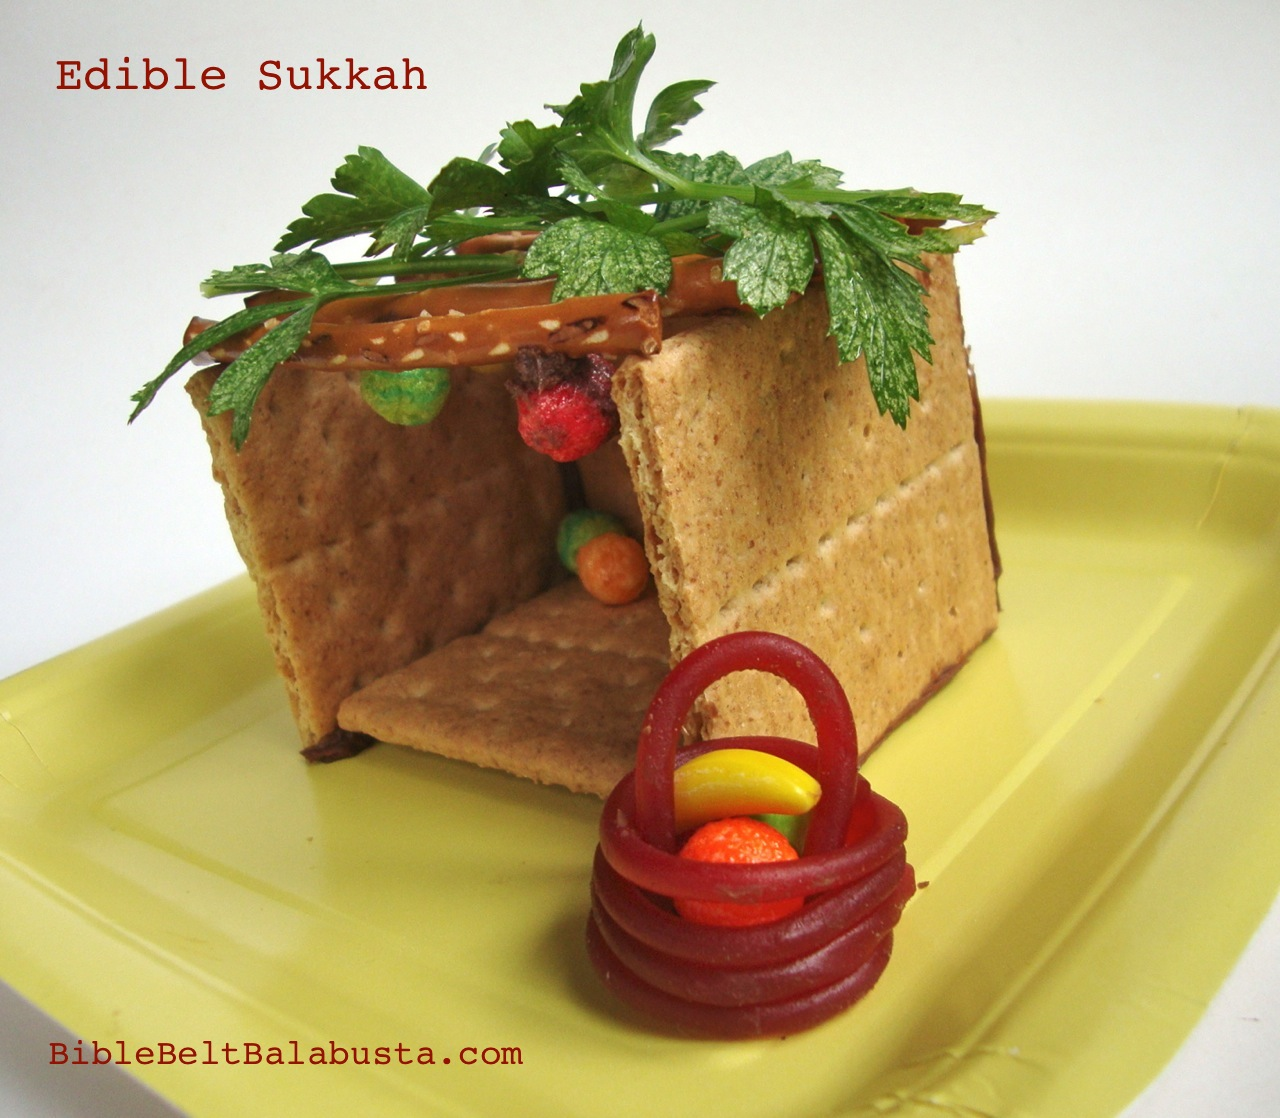 Instant Edible Sukkah: step by step photos | Bible Belt ...